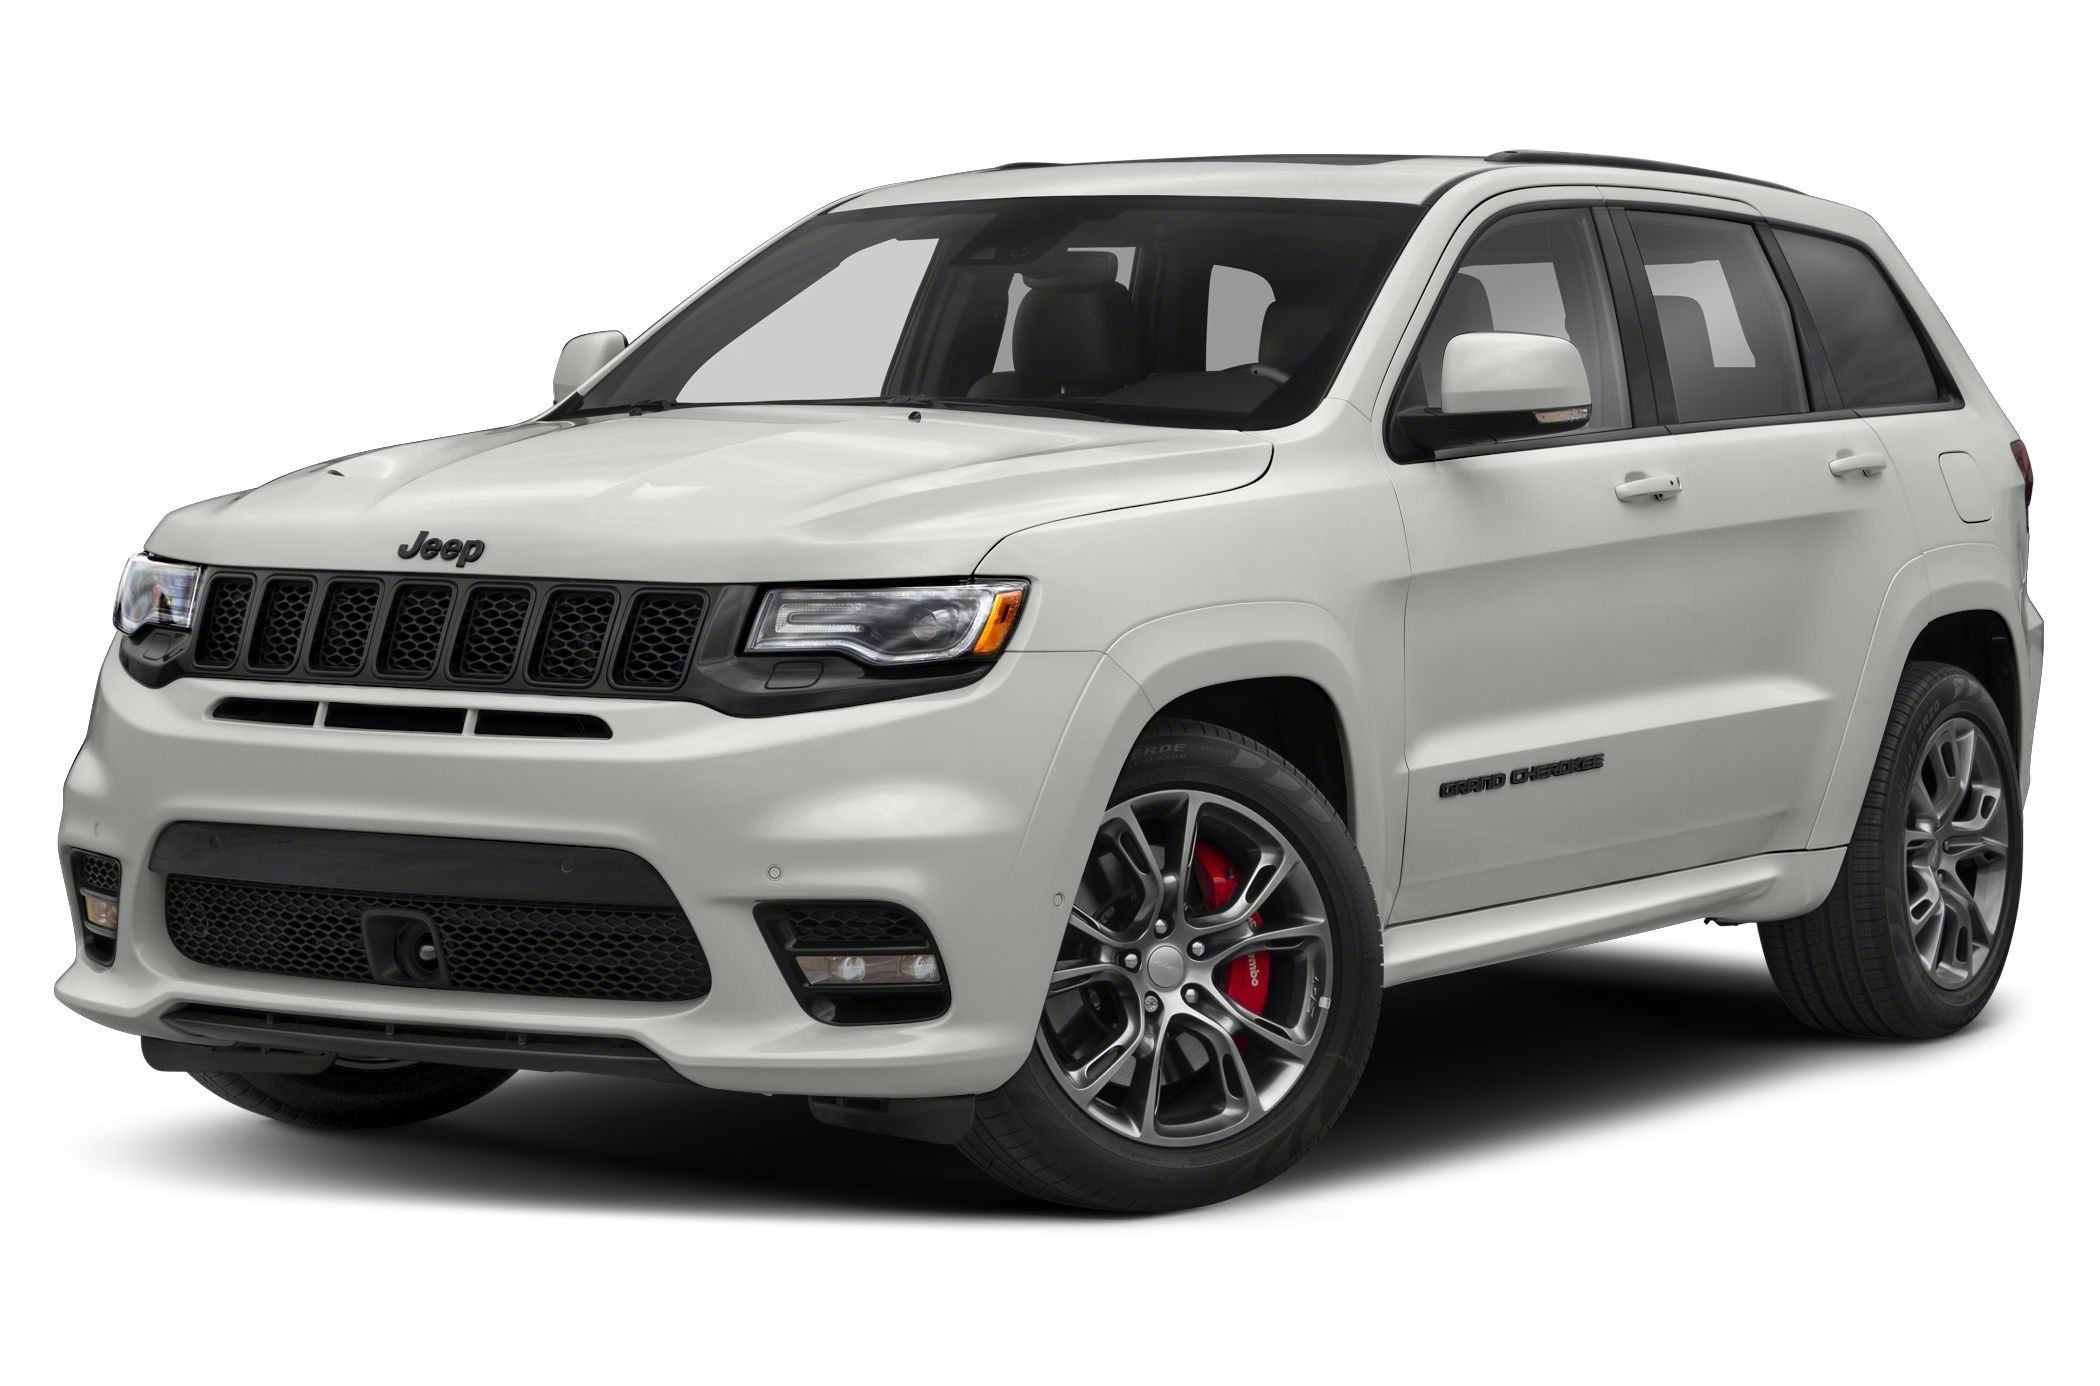 2021 Lincoln Mkz New Review in 2020 Jeep grand cherokee